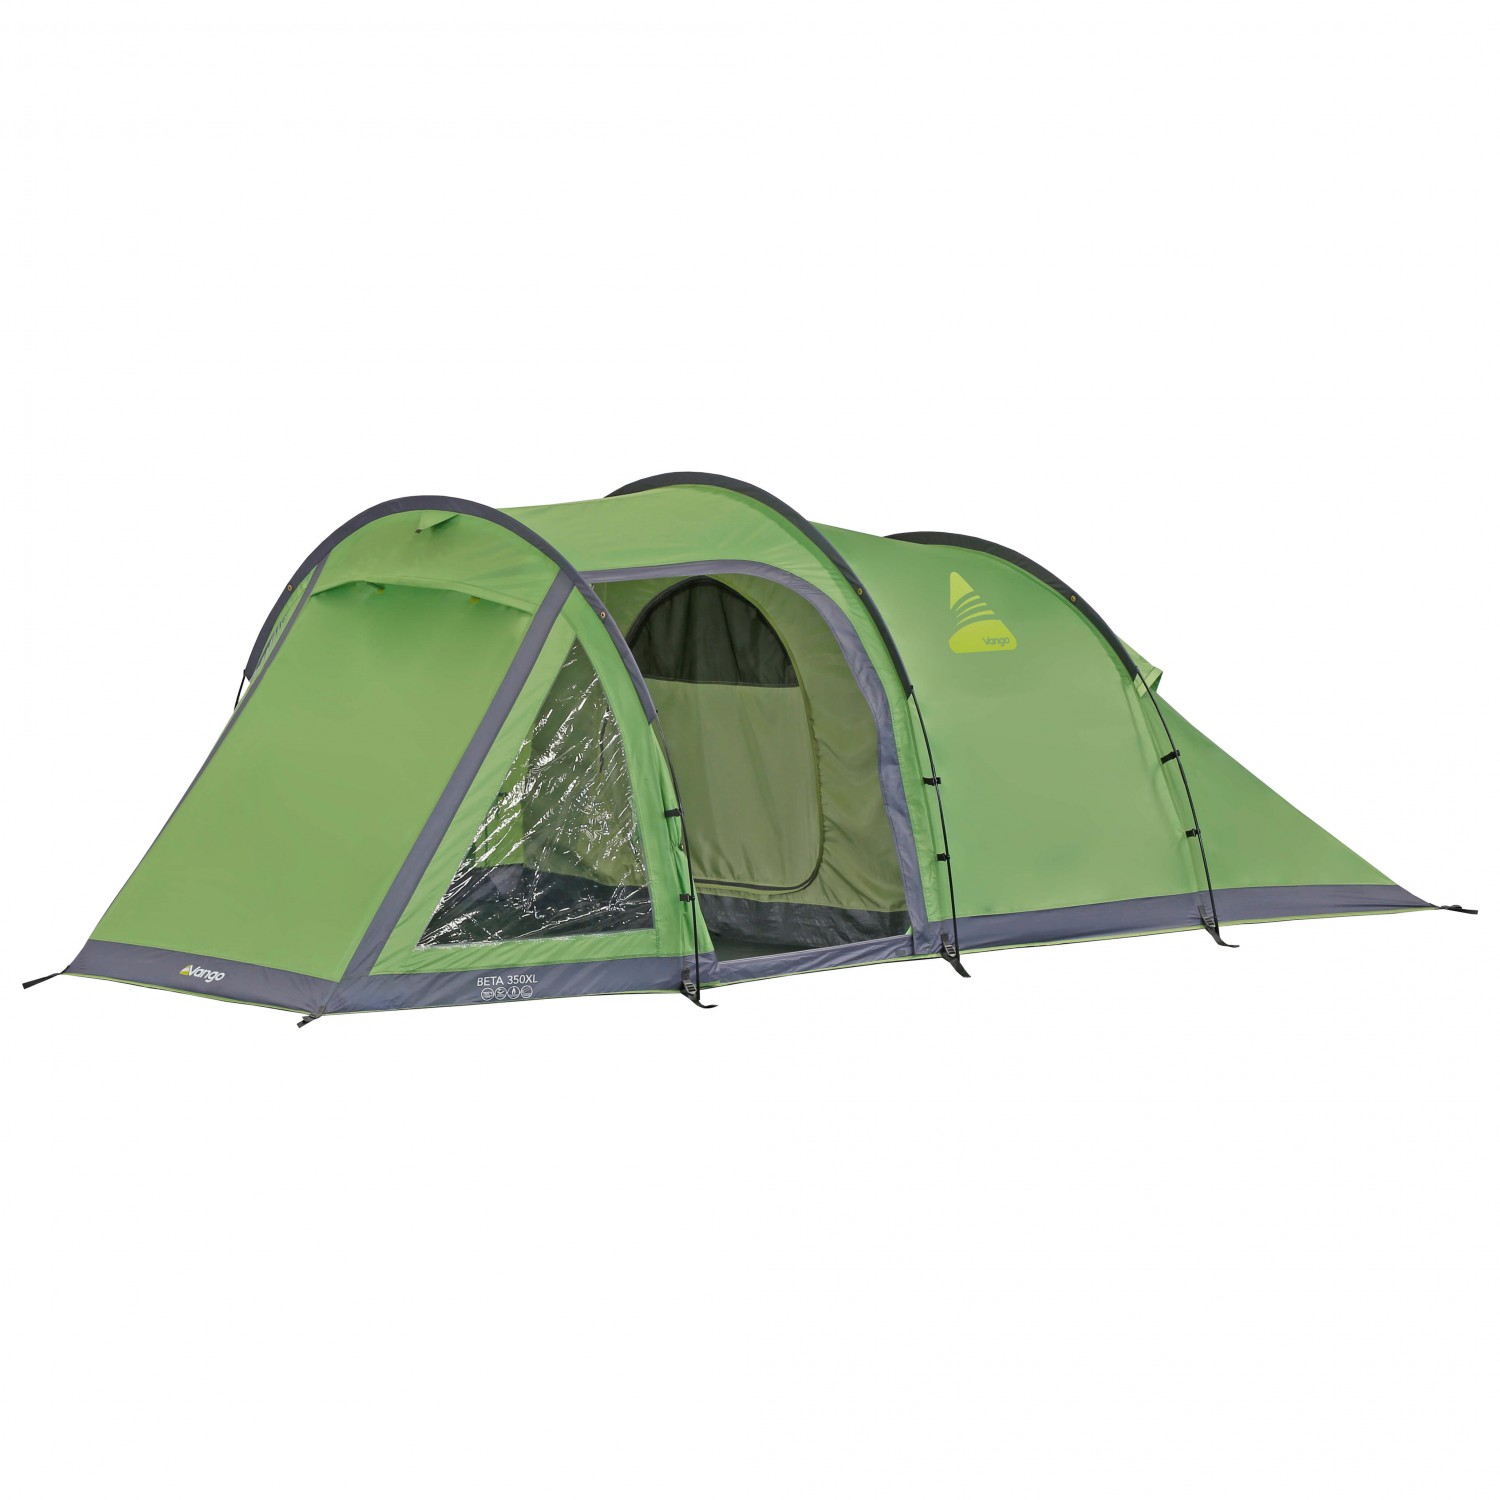 Vango - Beta 350 XL - 3 man tent  sc 1 st  Alpinetrek & Vango Beta 350 XL - 3 Man Tent | Free UK Delivery | Alpinetrek.co.uk